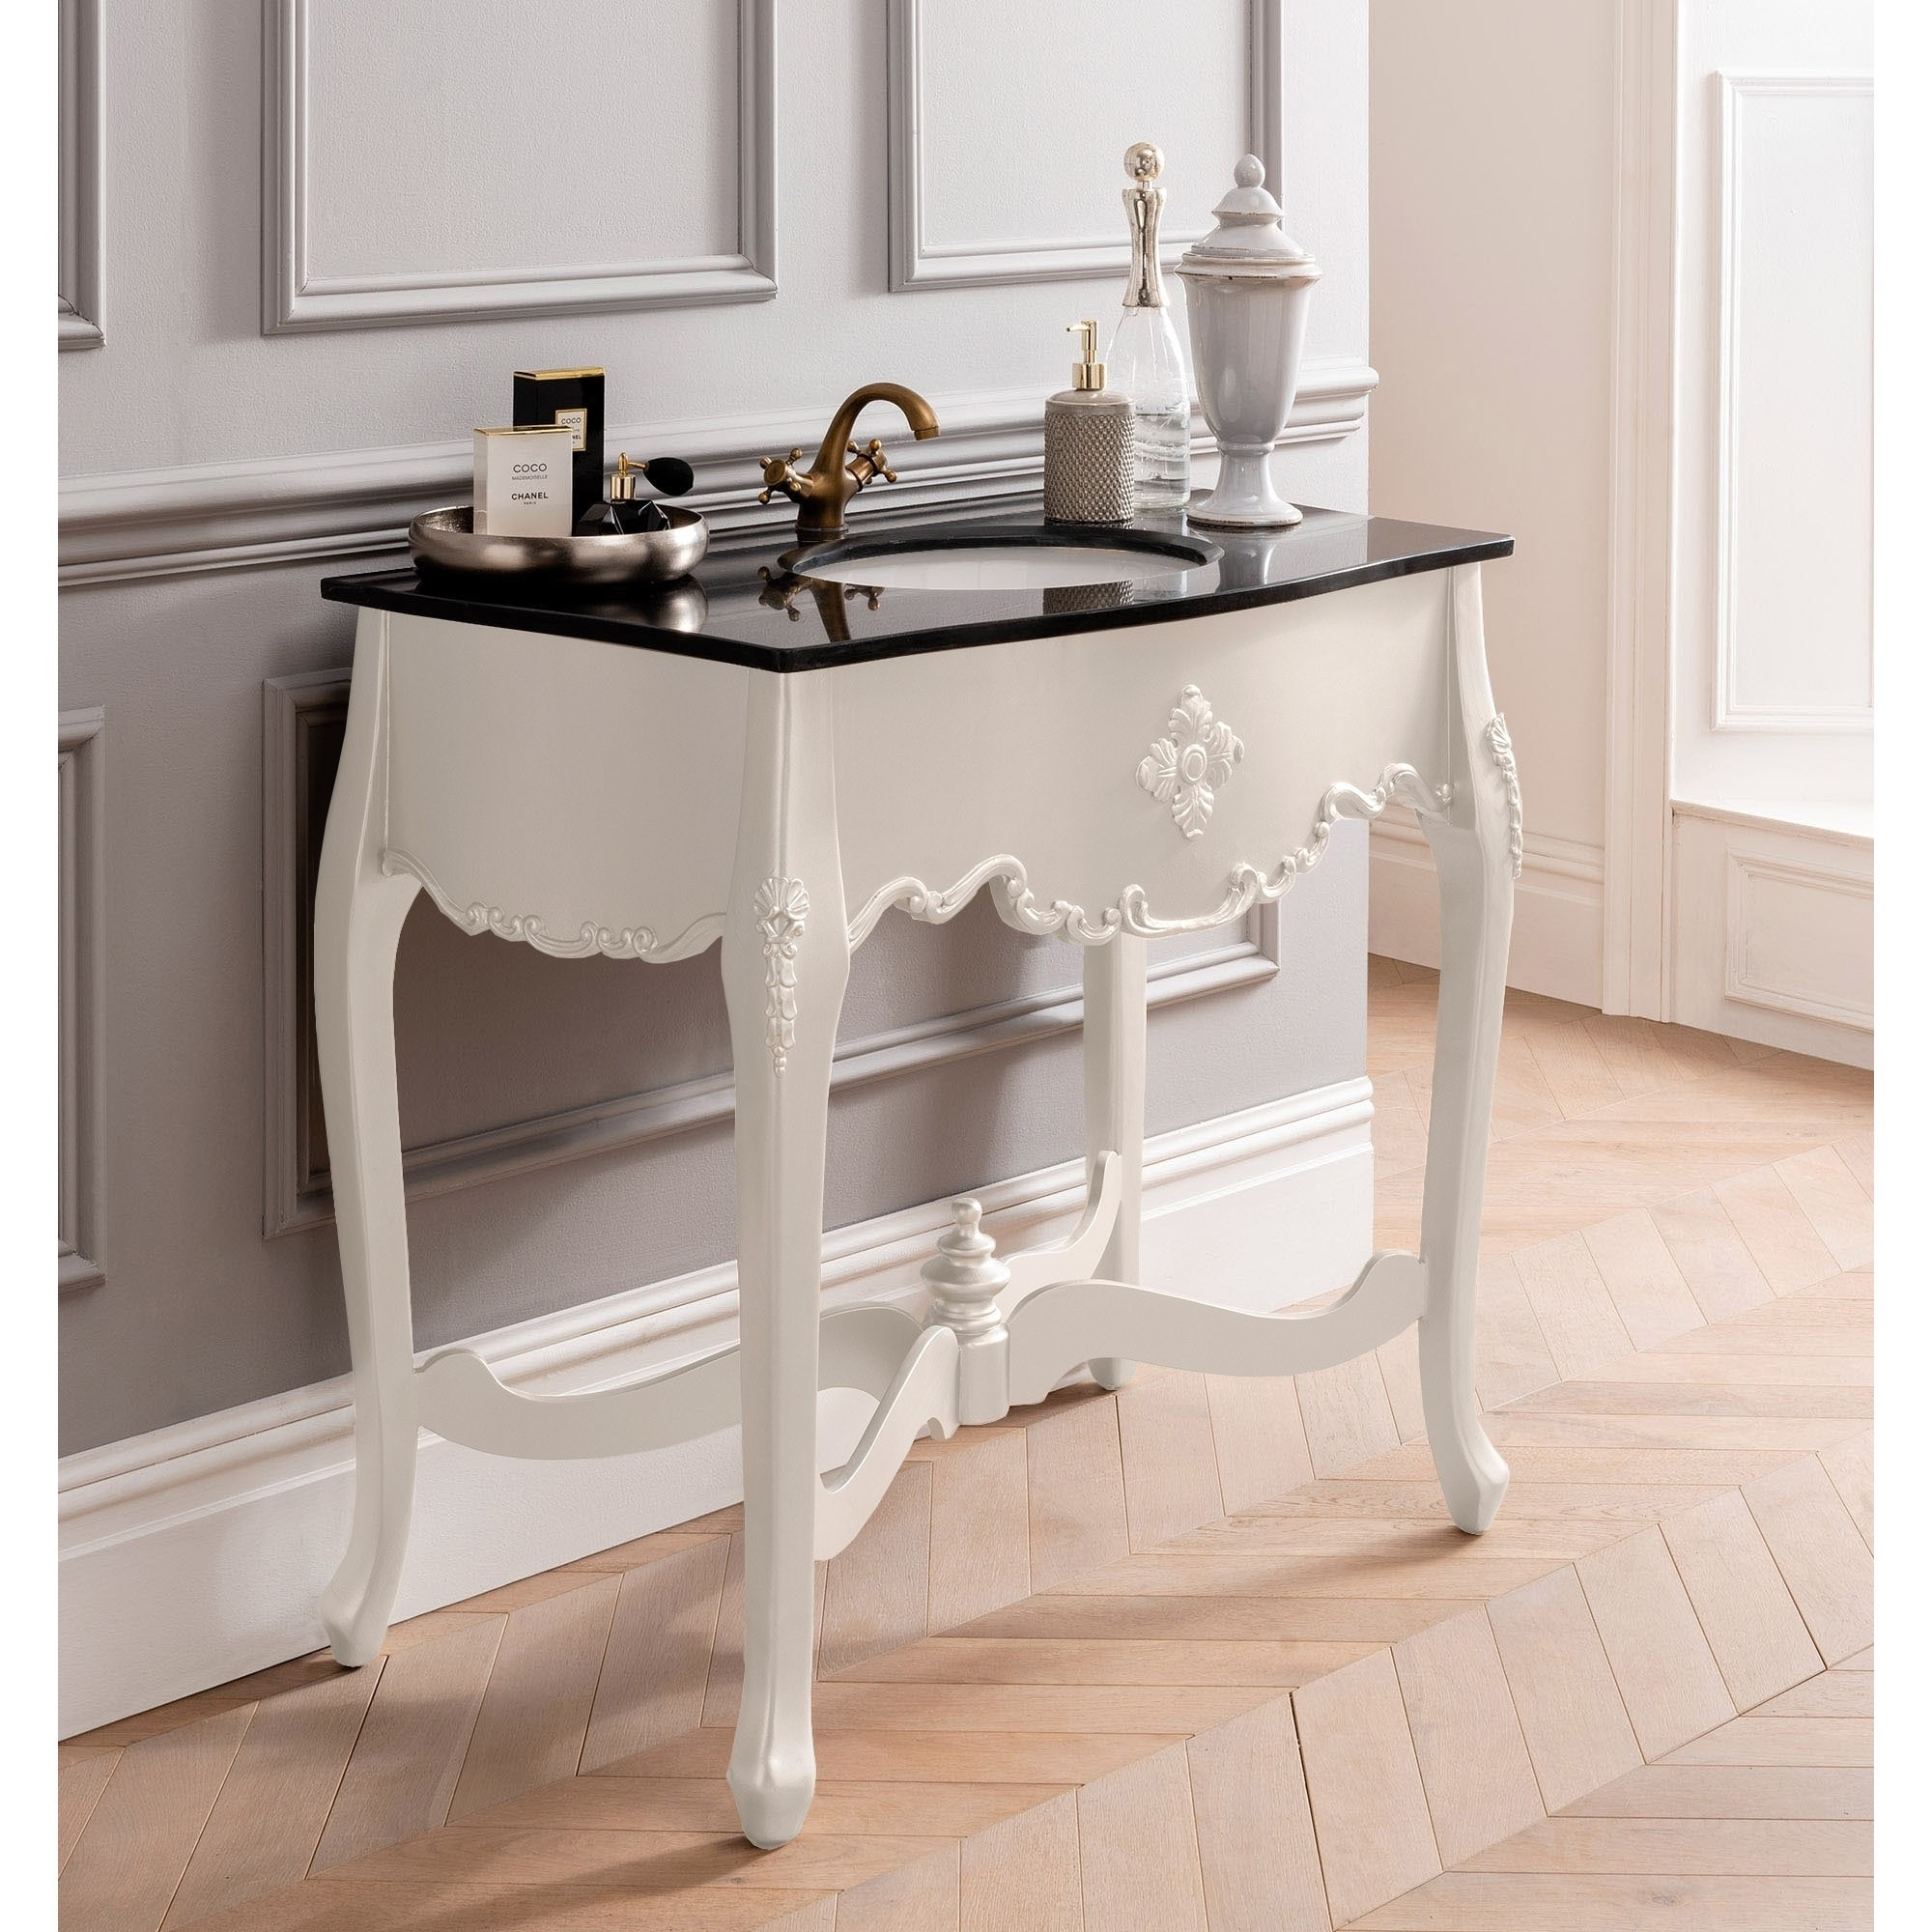 White Antique French Style Vanity Unit Bathroom Furniture